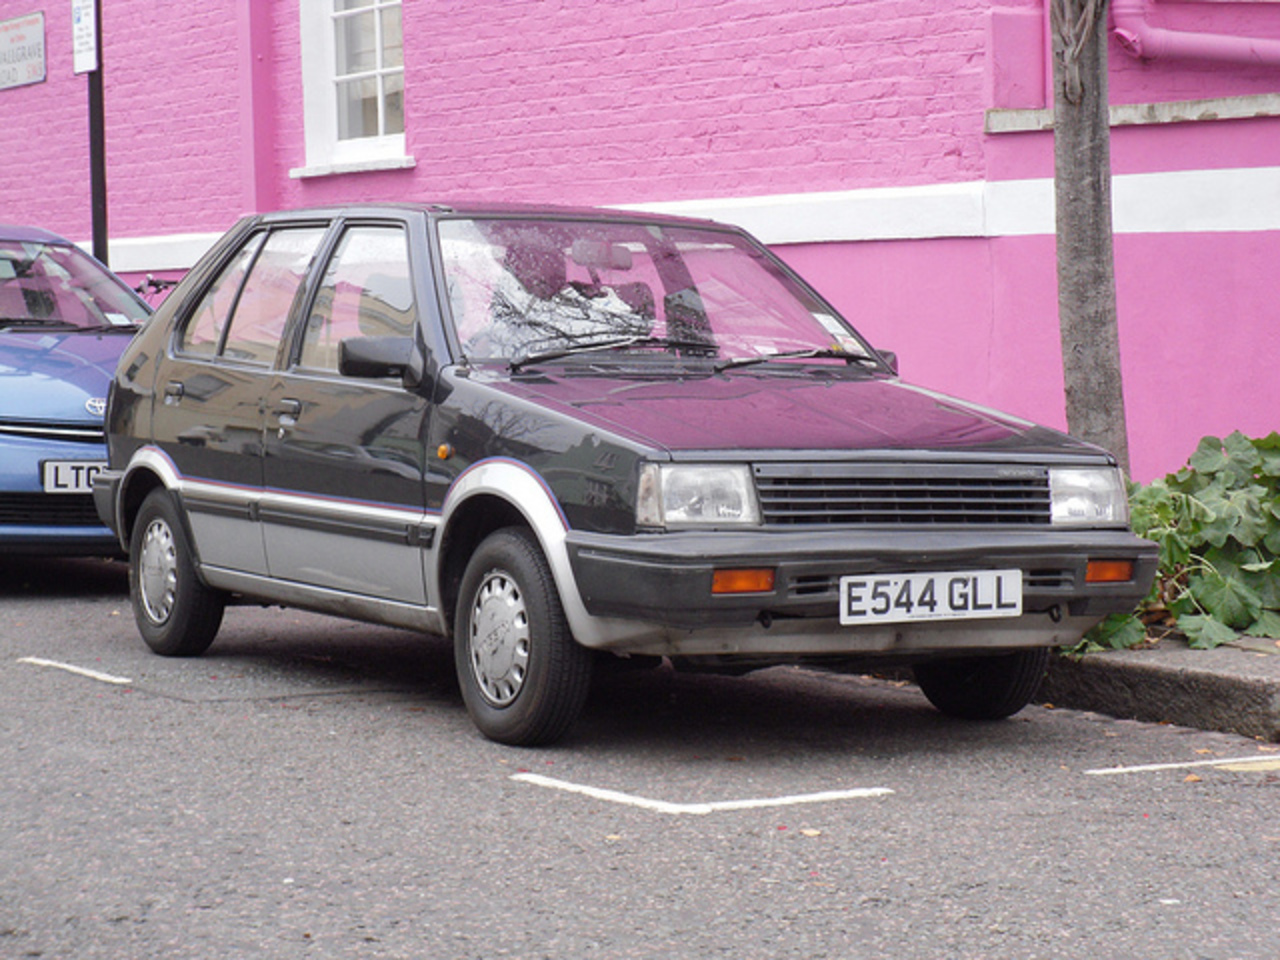 1987 Nissan Micra Colette Hatchback. | Flickr - Photo Sharing!